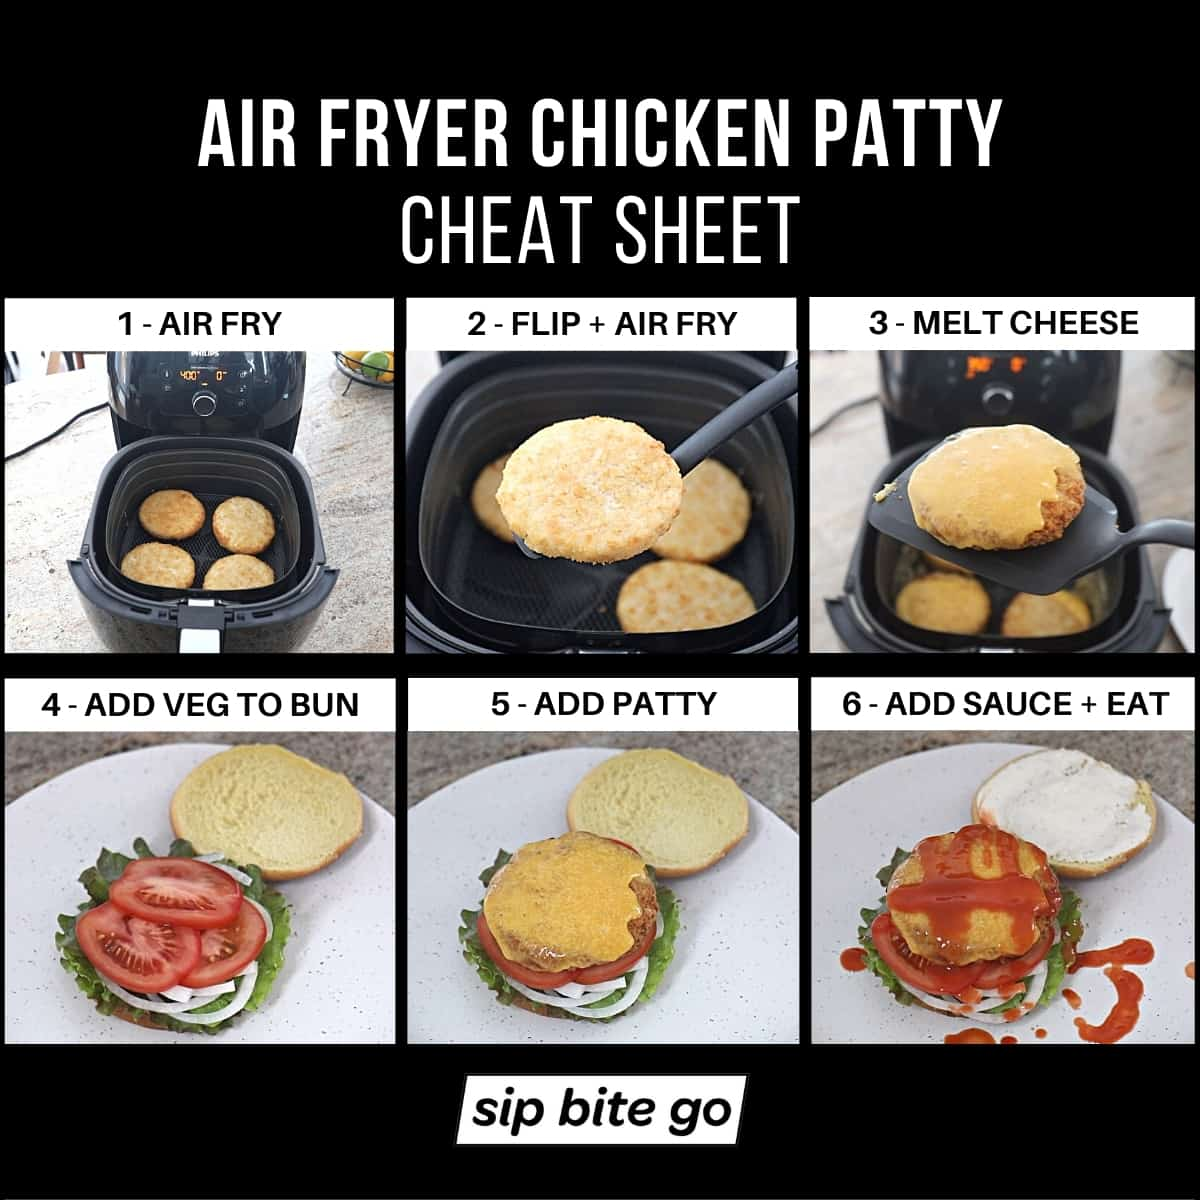 Infographic demonstrating how to air fry frozen chicken patties